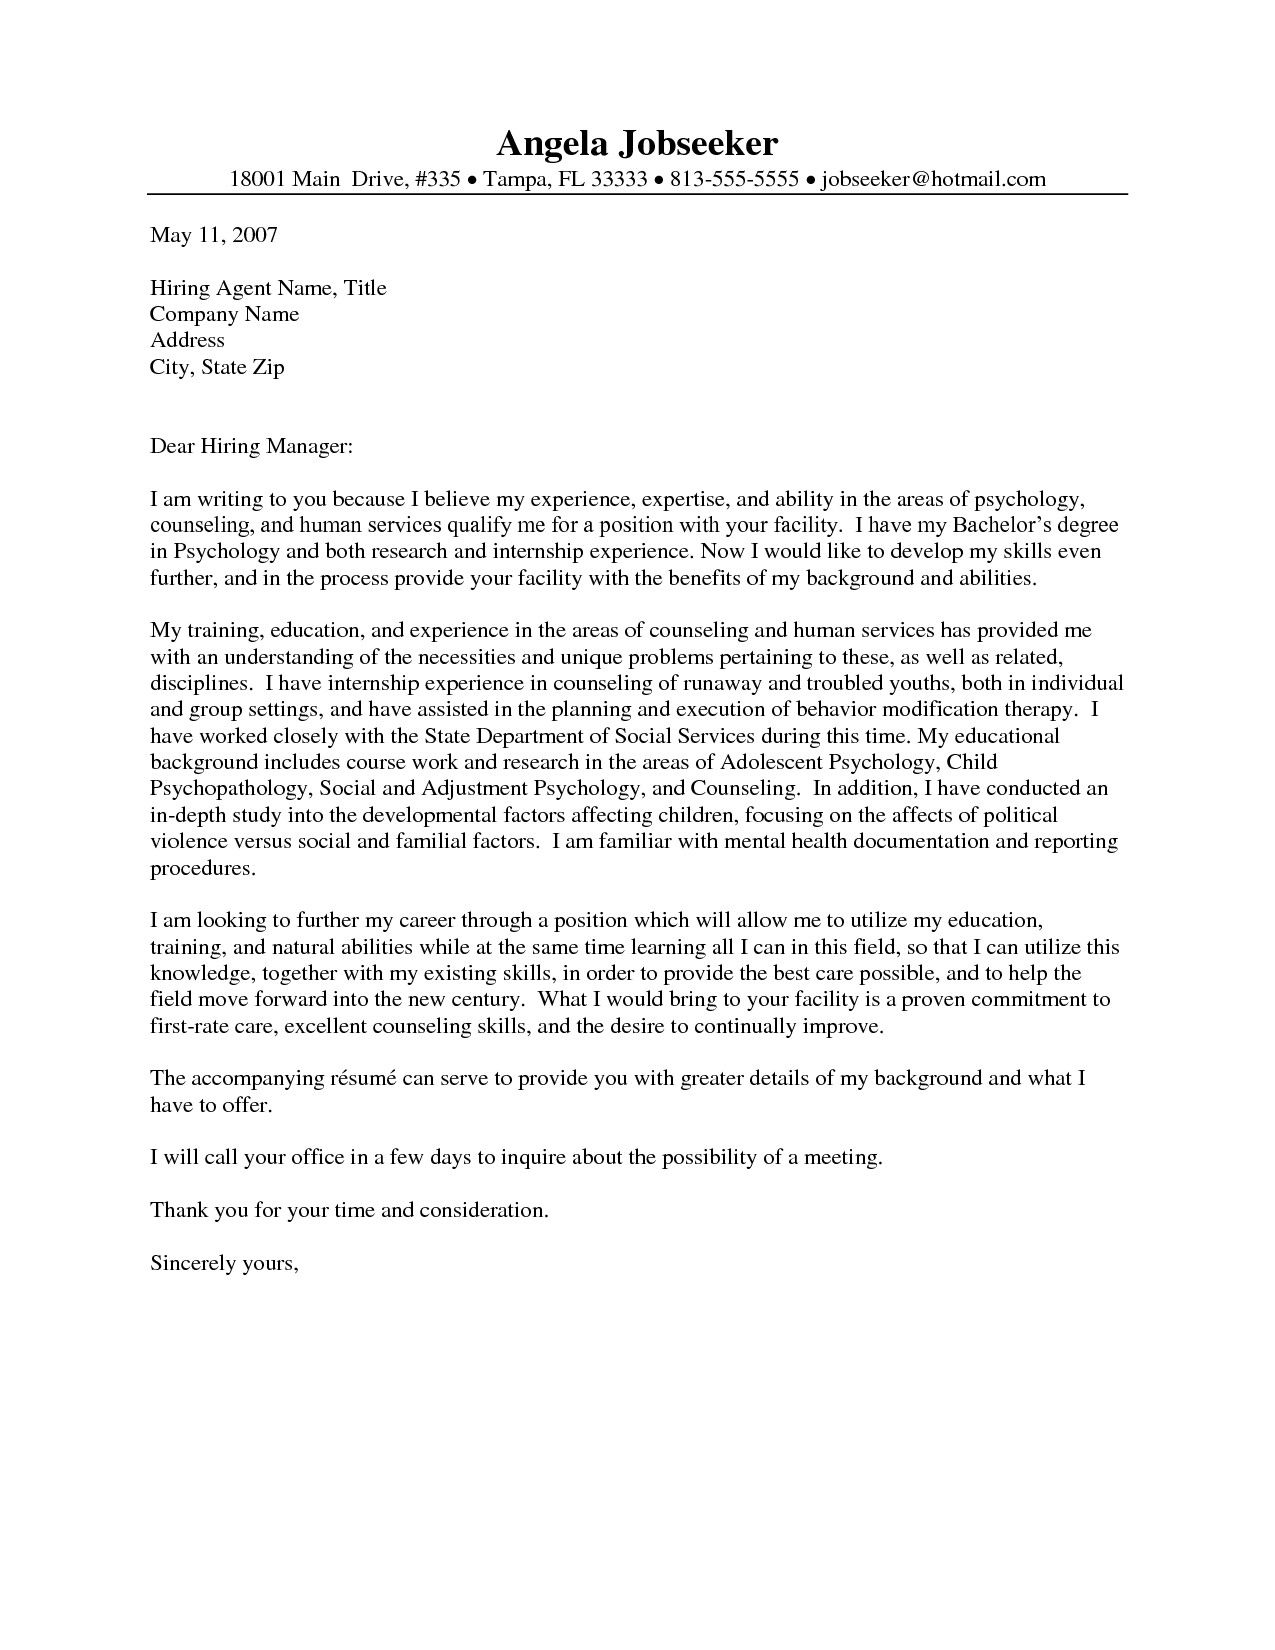 Pin by Waldwert Site on Resume Formats | Cover letter sample, Cover ...